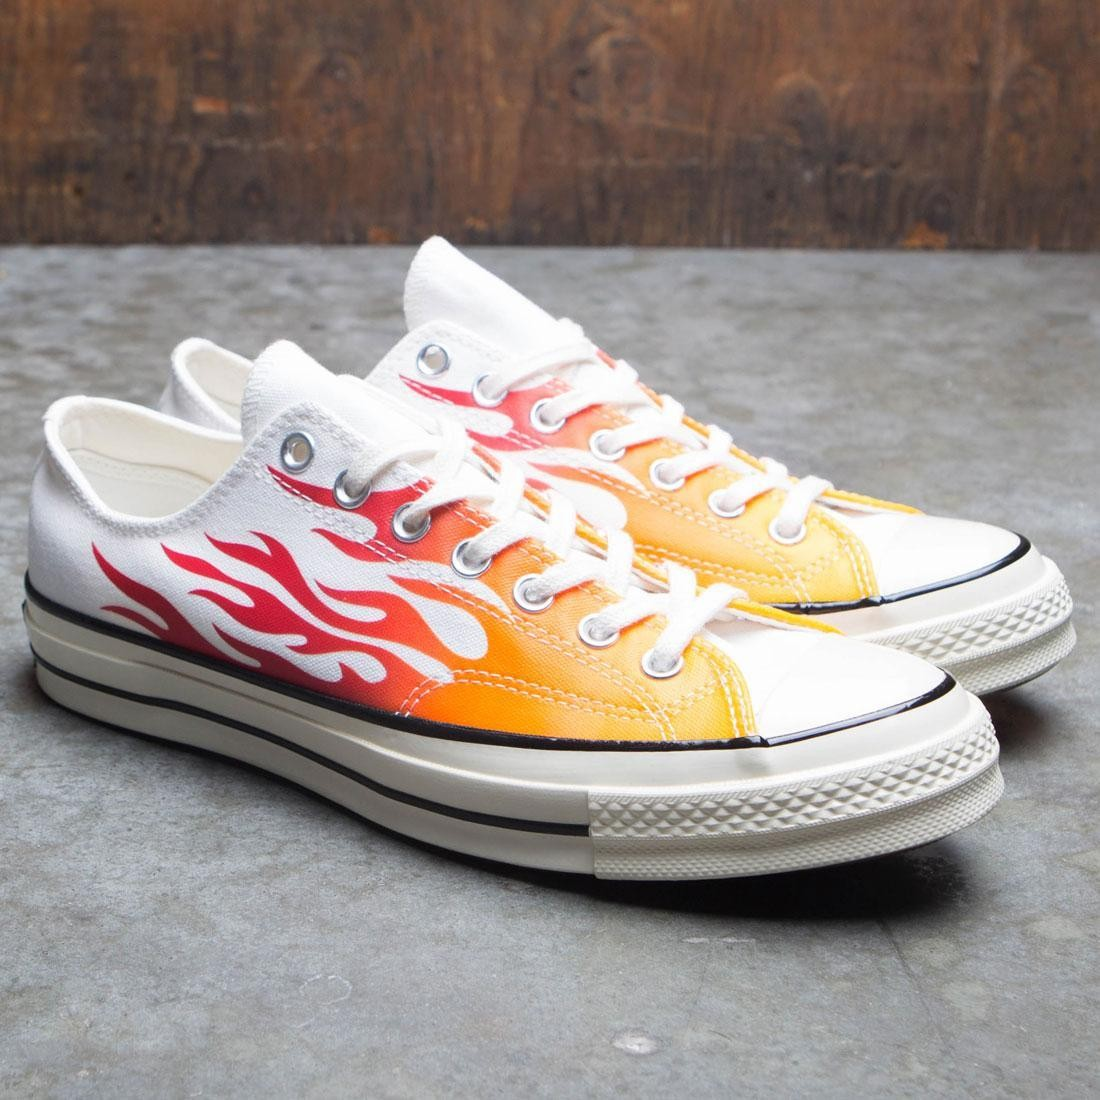 Converse Chuck Taylor 1970s Ox Flames White, Enamel Red